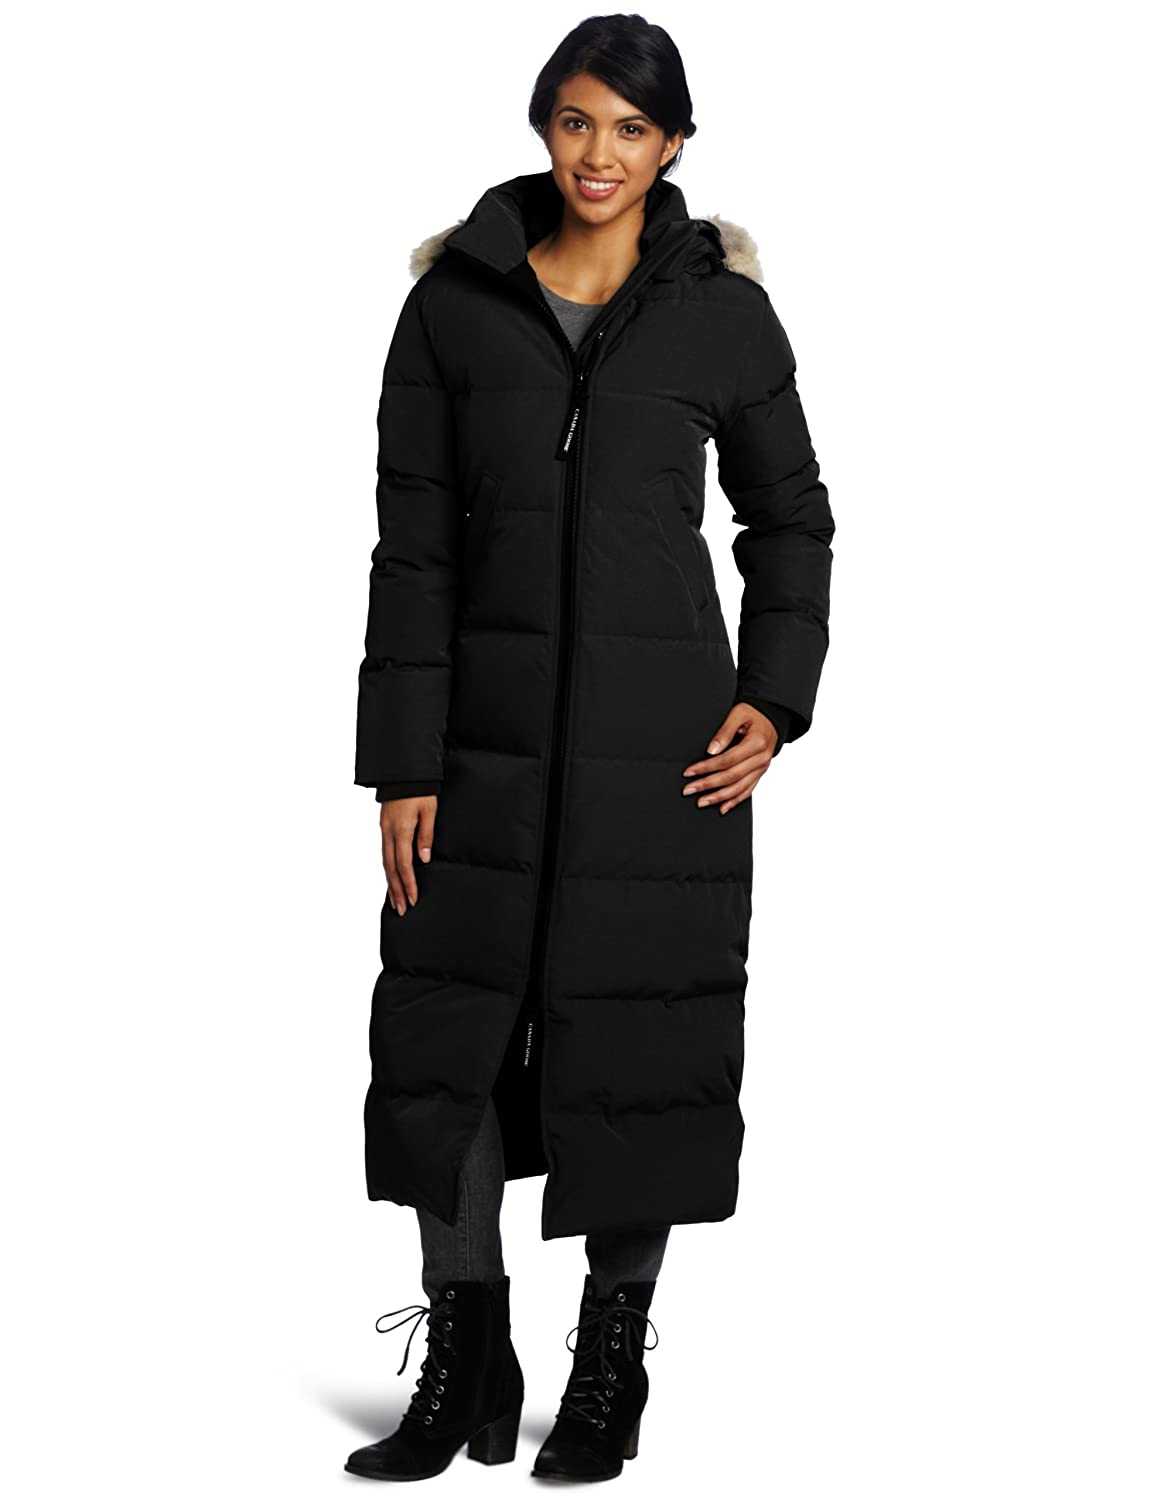 Amazon.com: Canada Goose Women's Whistler Parka,Black,Small ...